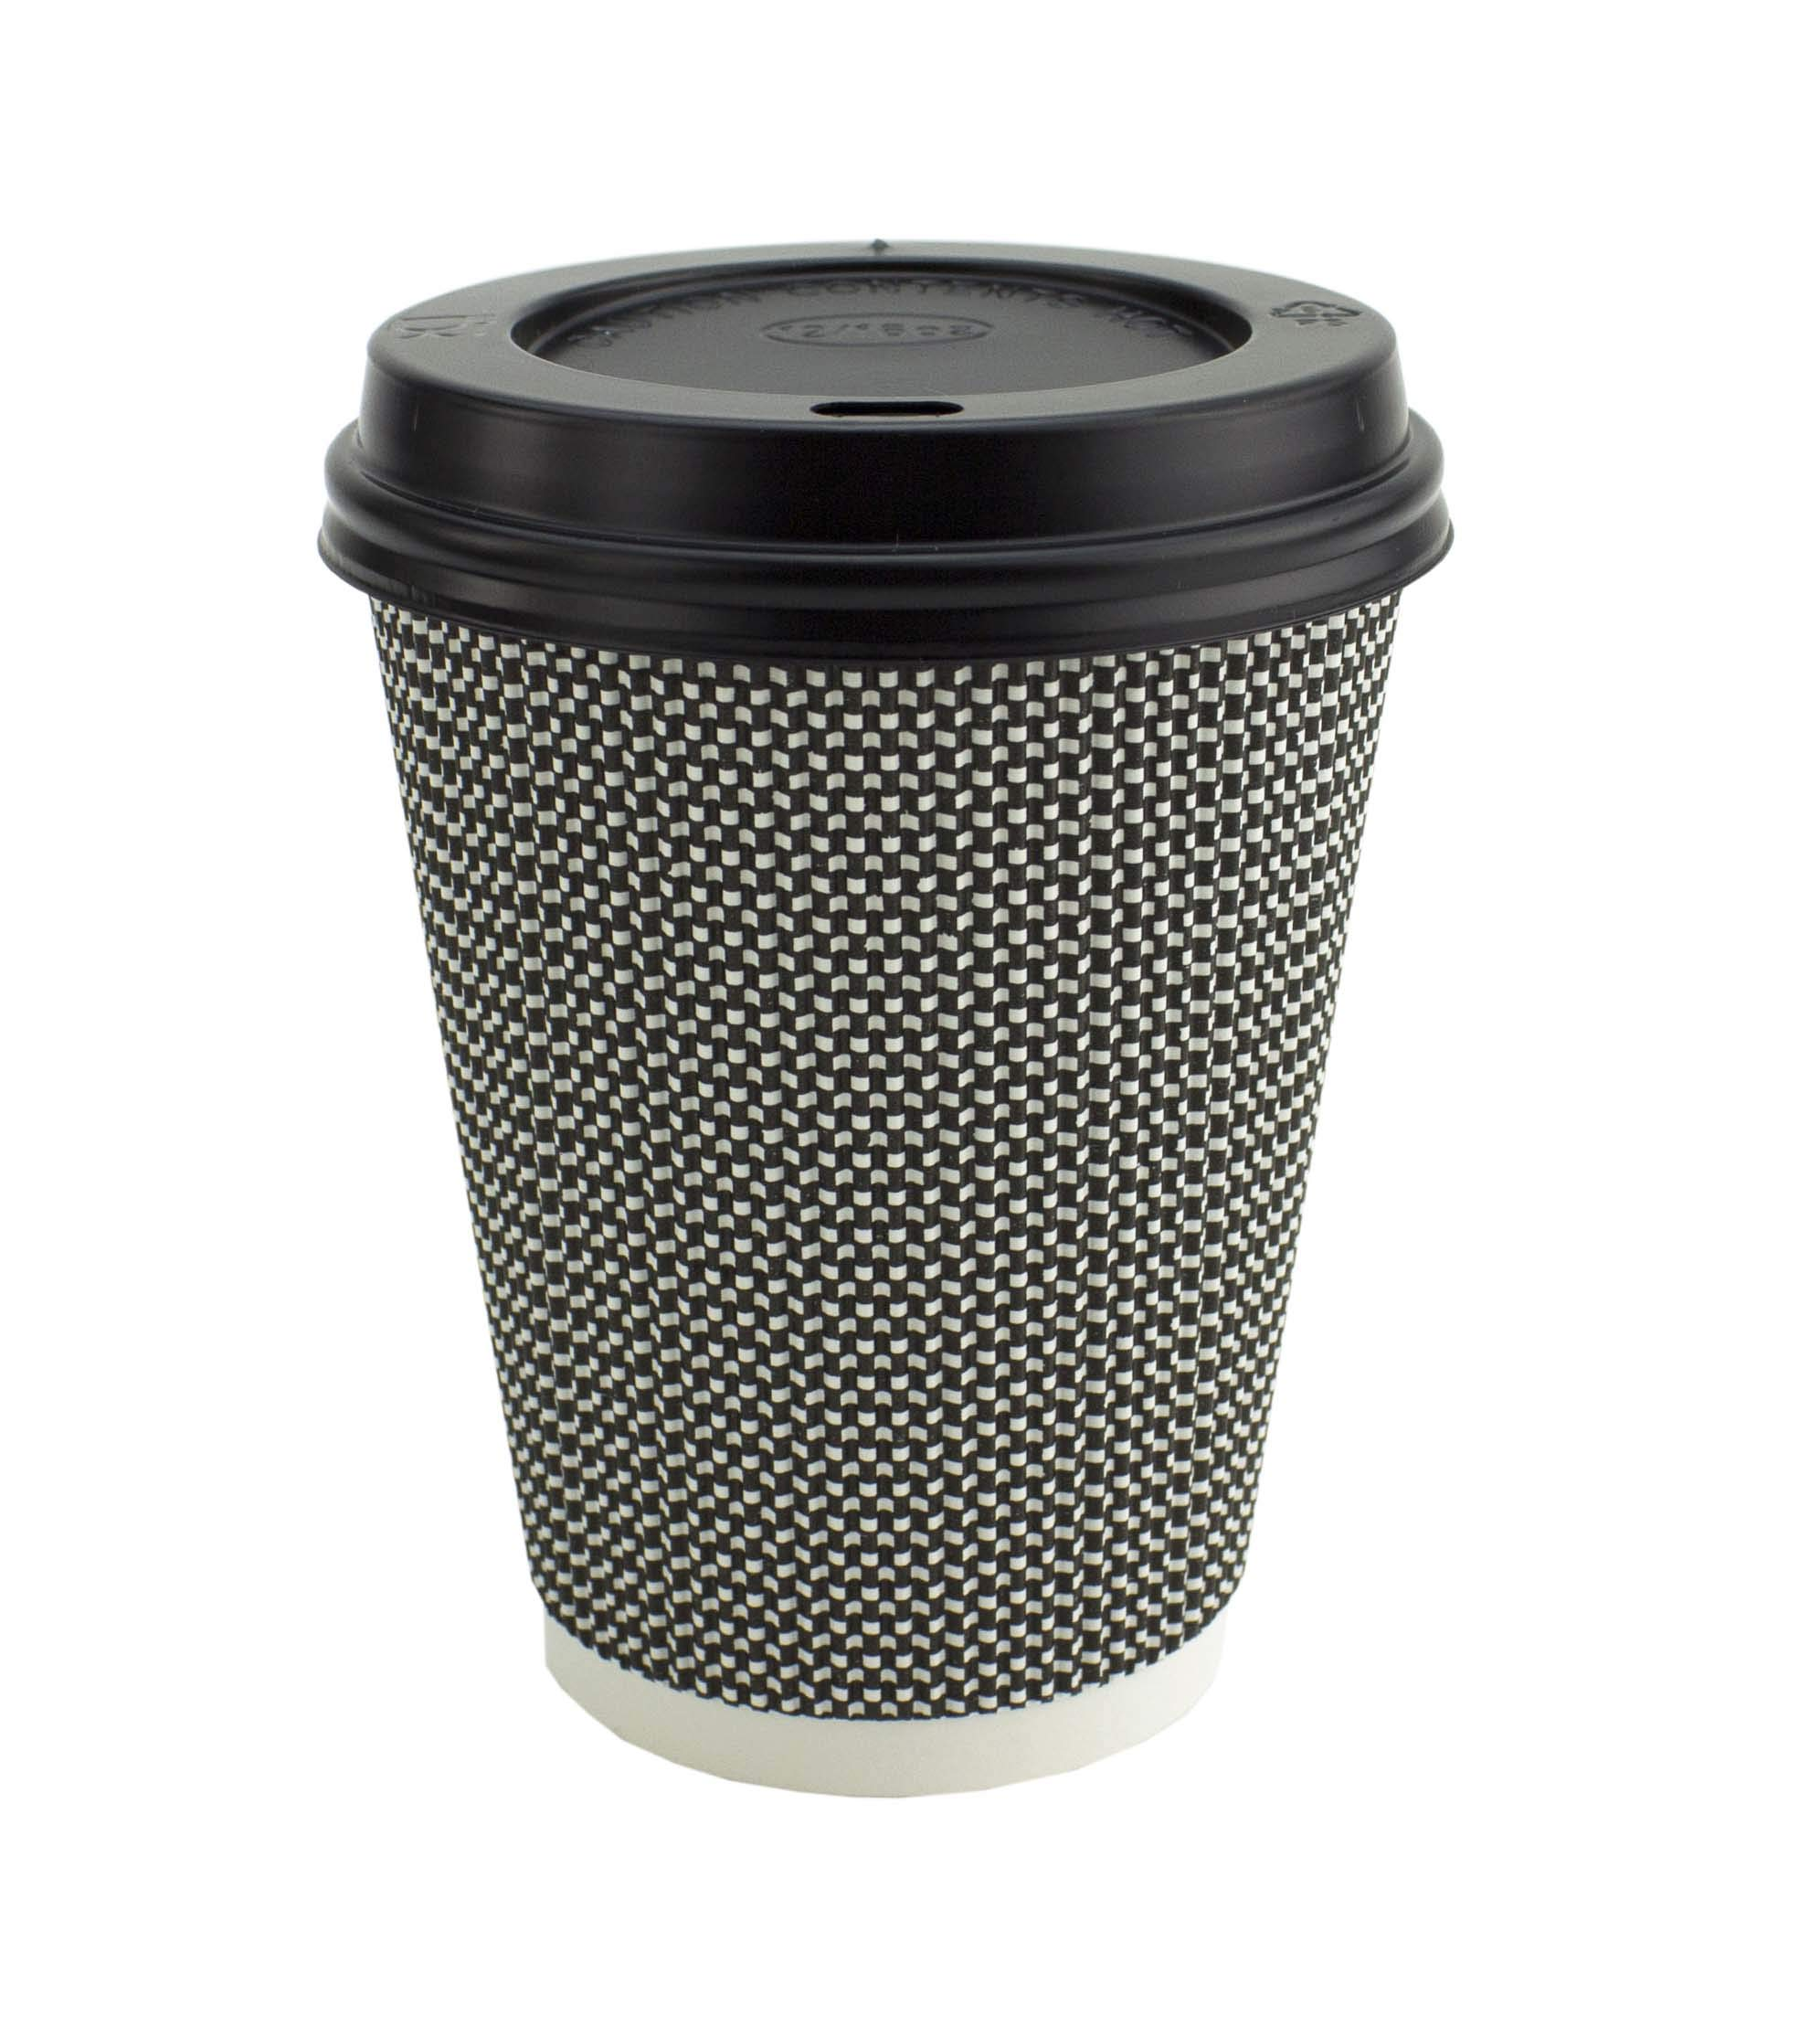 Signature Ripple Hot Cups – Disposable Coffee Cups with Lids for Takeaway Drinks – 50 Cups and 50 Lids – Triple Wall Insulated Paper Cups for Hot Drinks and Leak Proof Lids (12 oz)